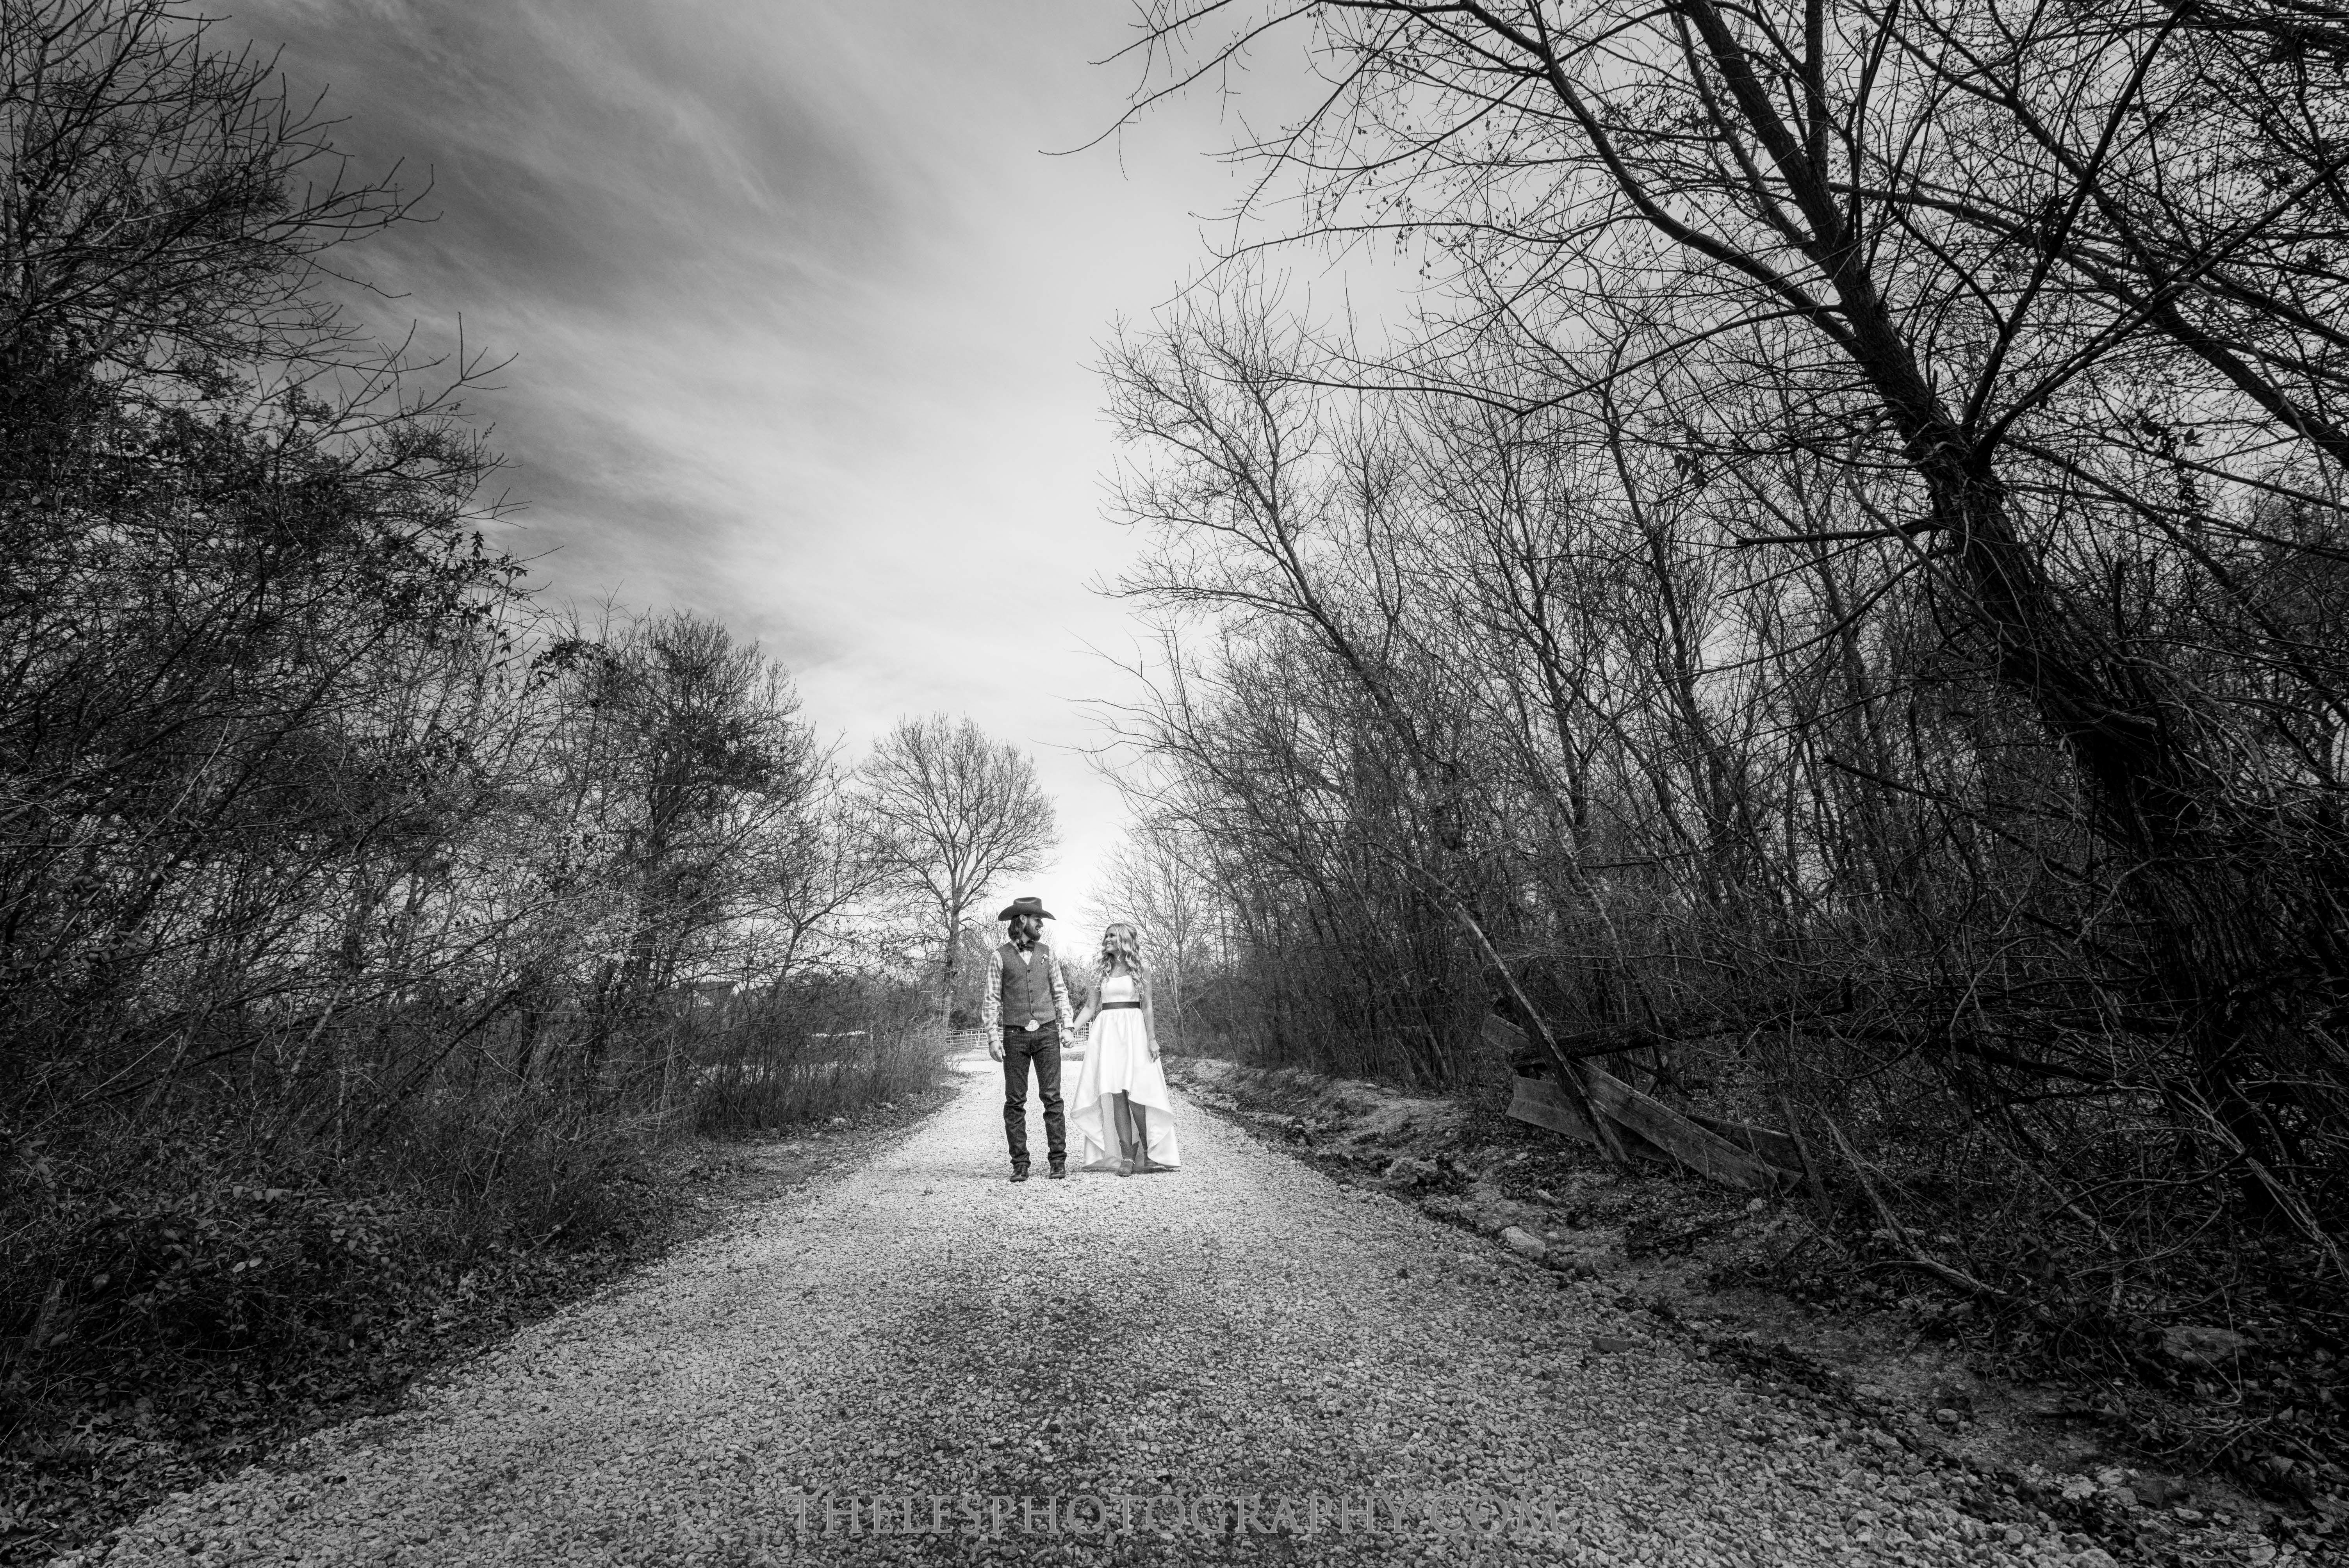 042 Dallas Wedding Photography - Photographer - The Les Photography - Fort Country Memories Wedding